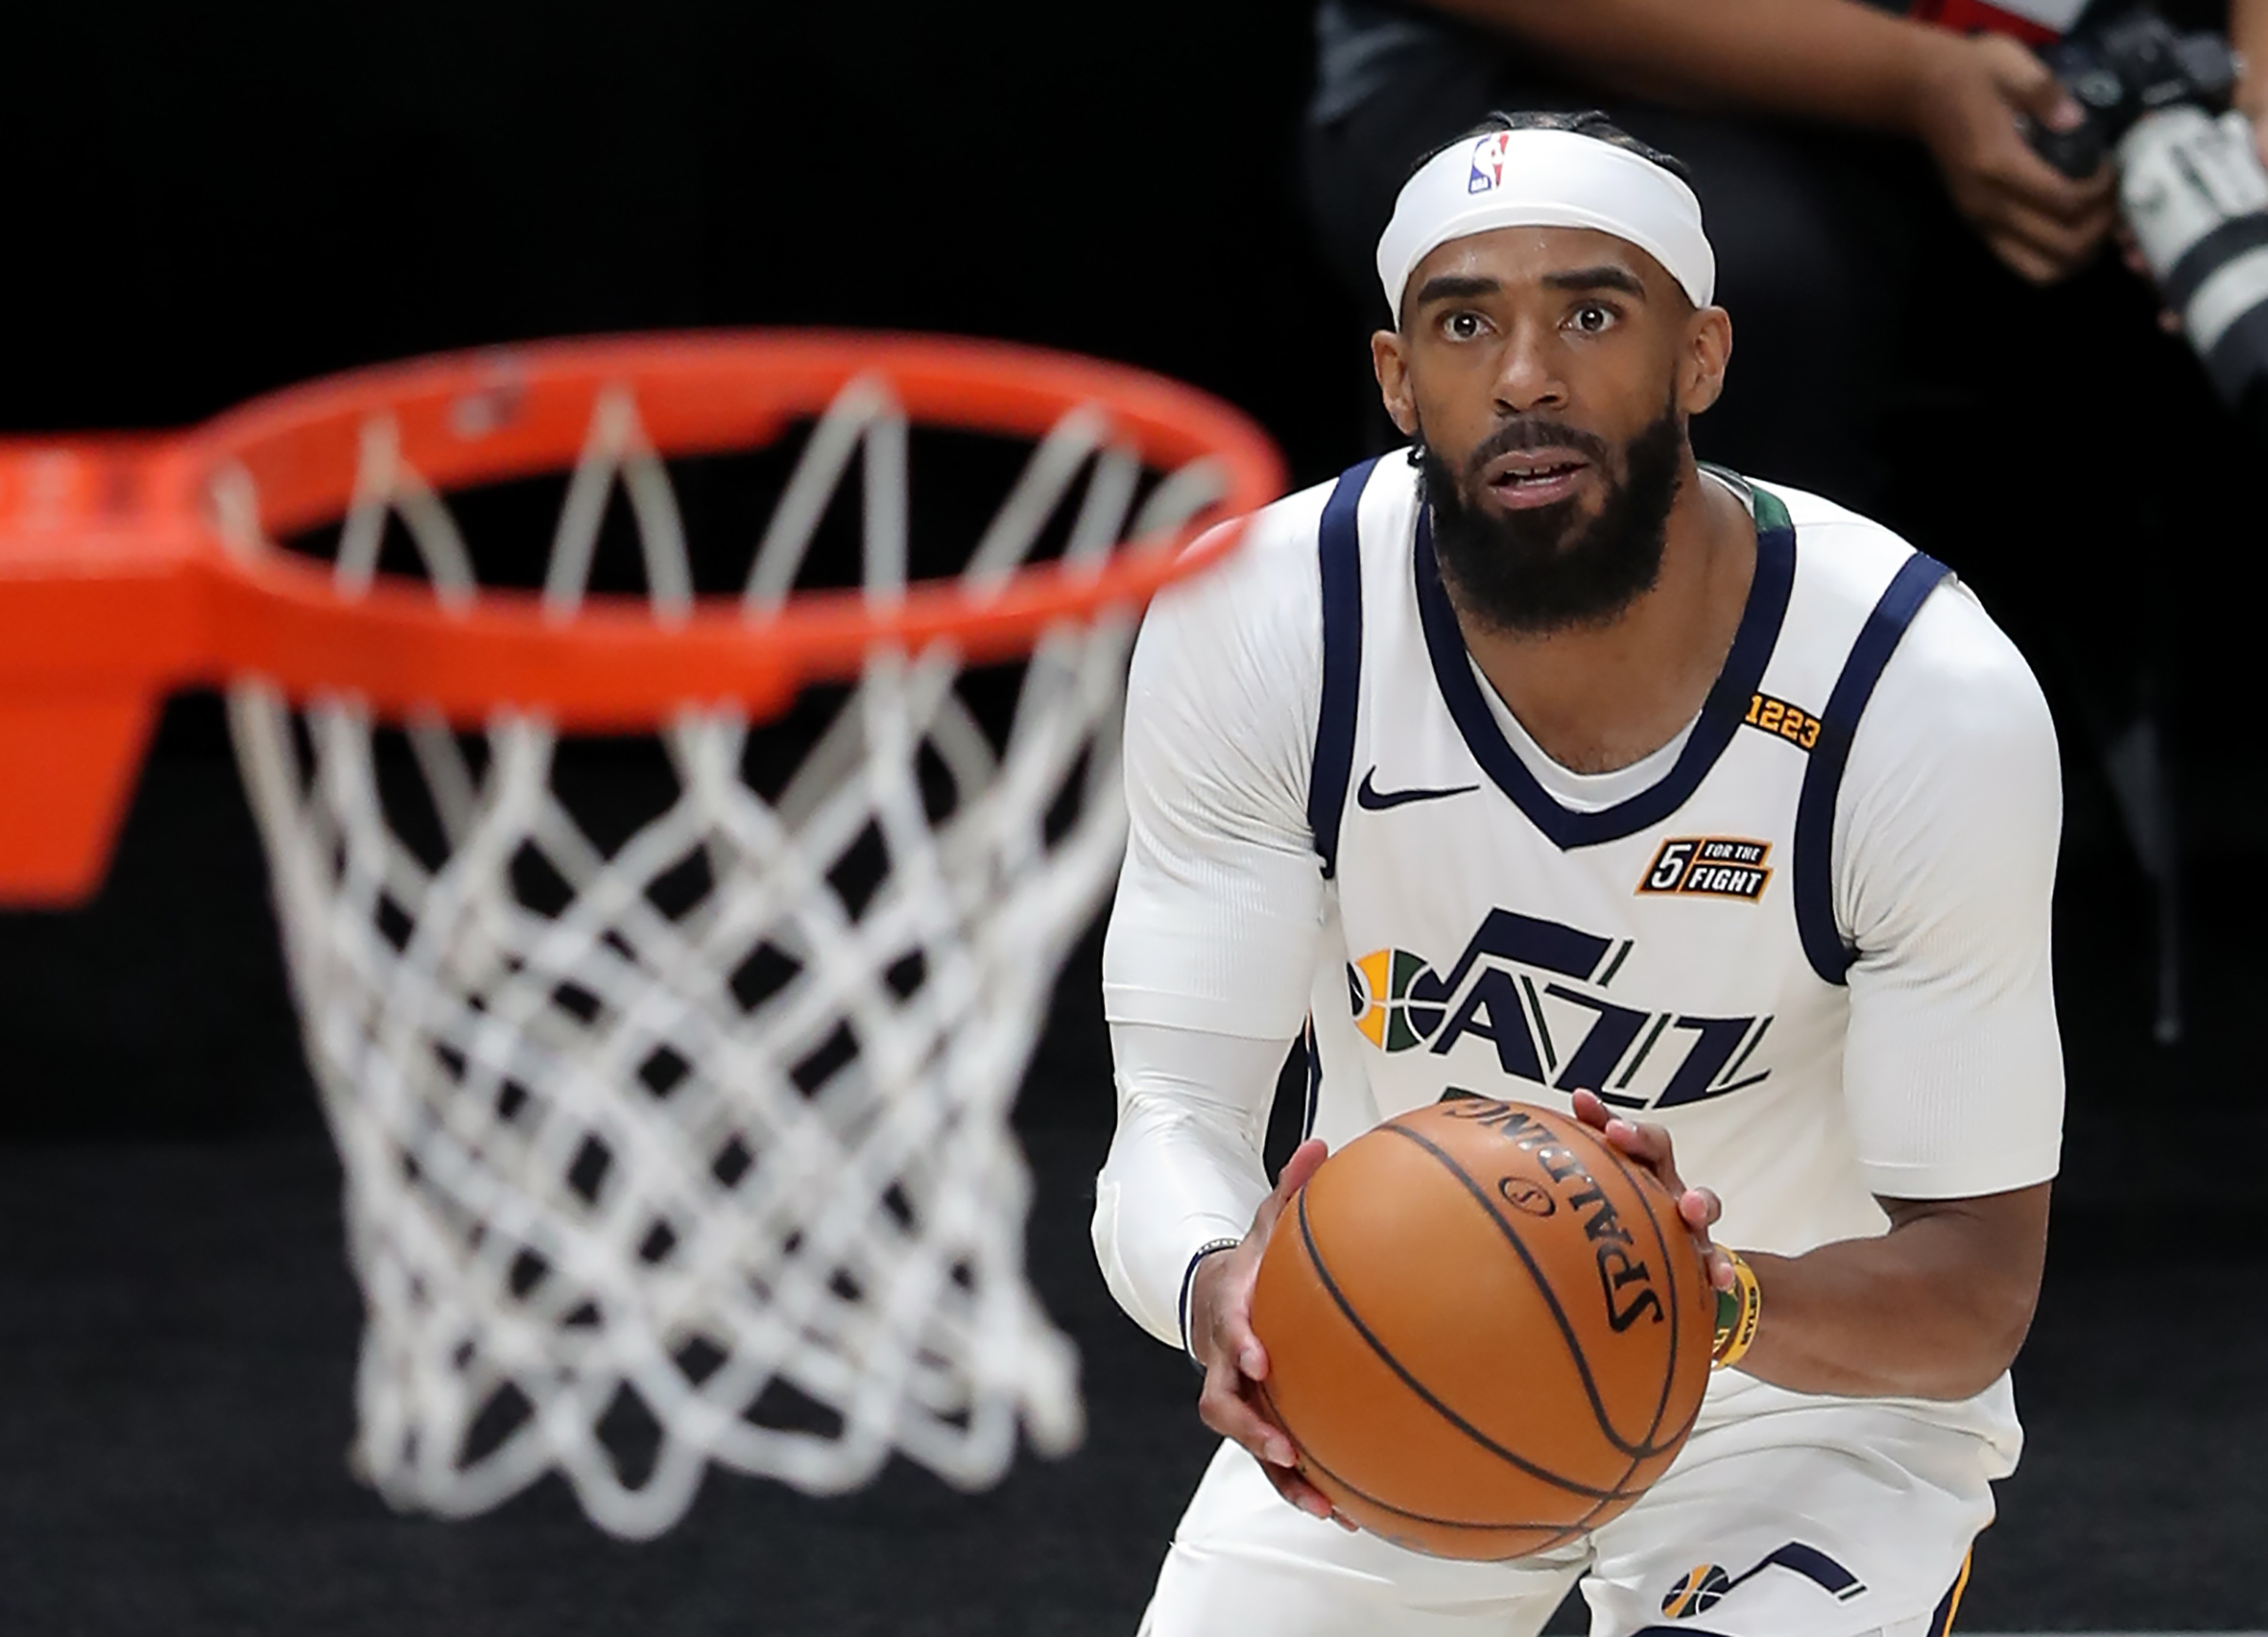 Utah Jazz guard Mike Conley eyes the basket as he goes up for and hits a three point shot.